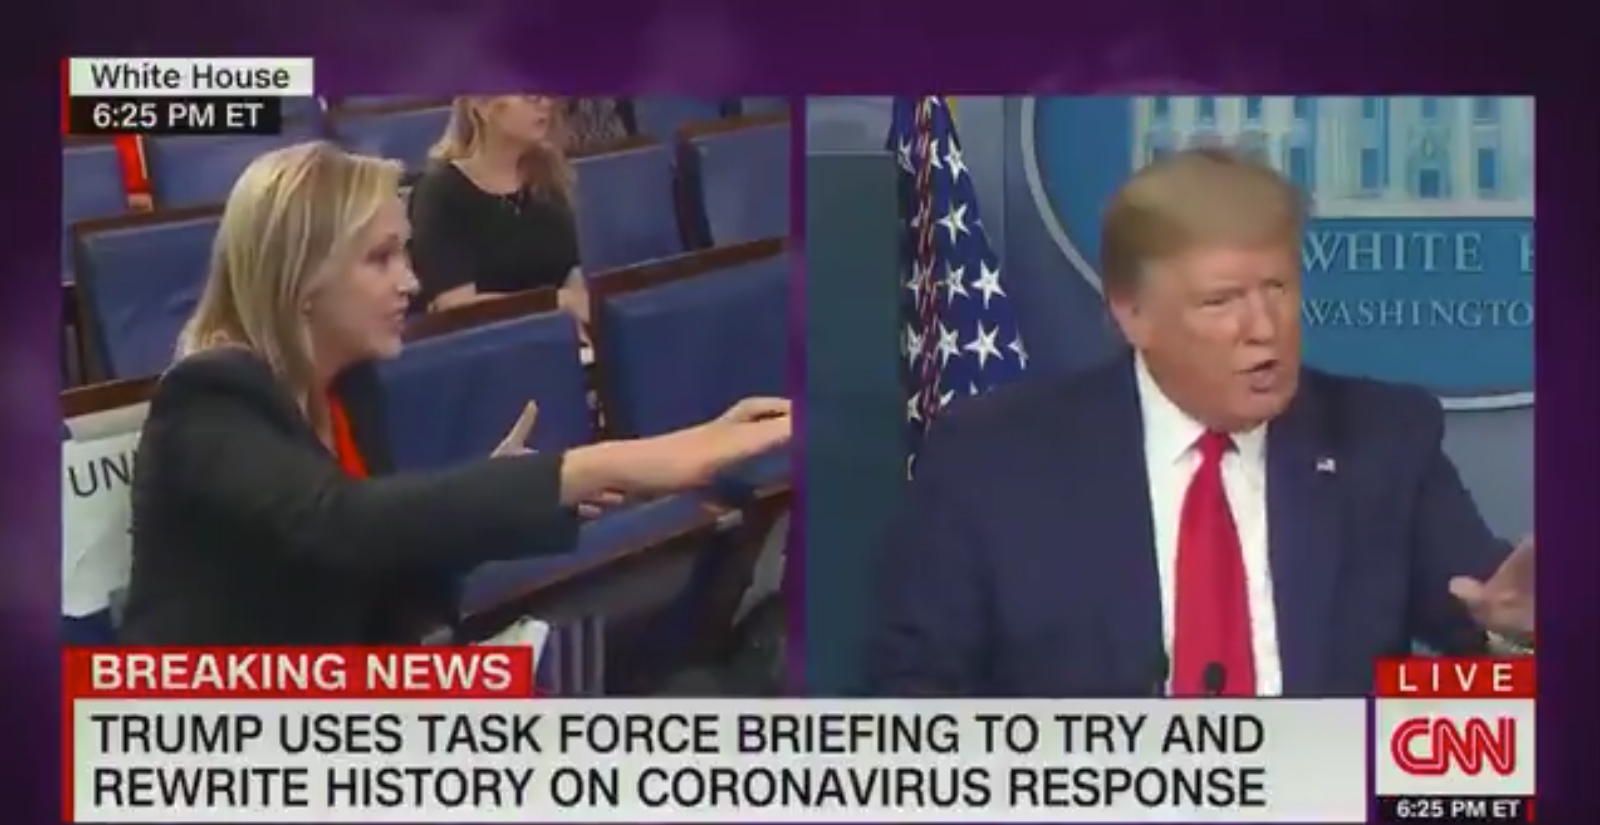 trump cnn chyron trump uses task force briefing to try and rewrite history on coronavirus response